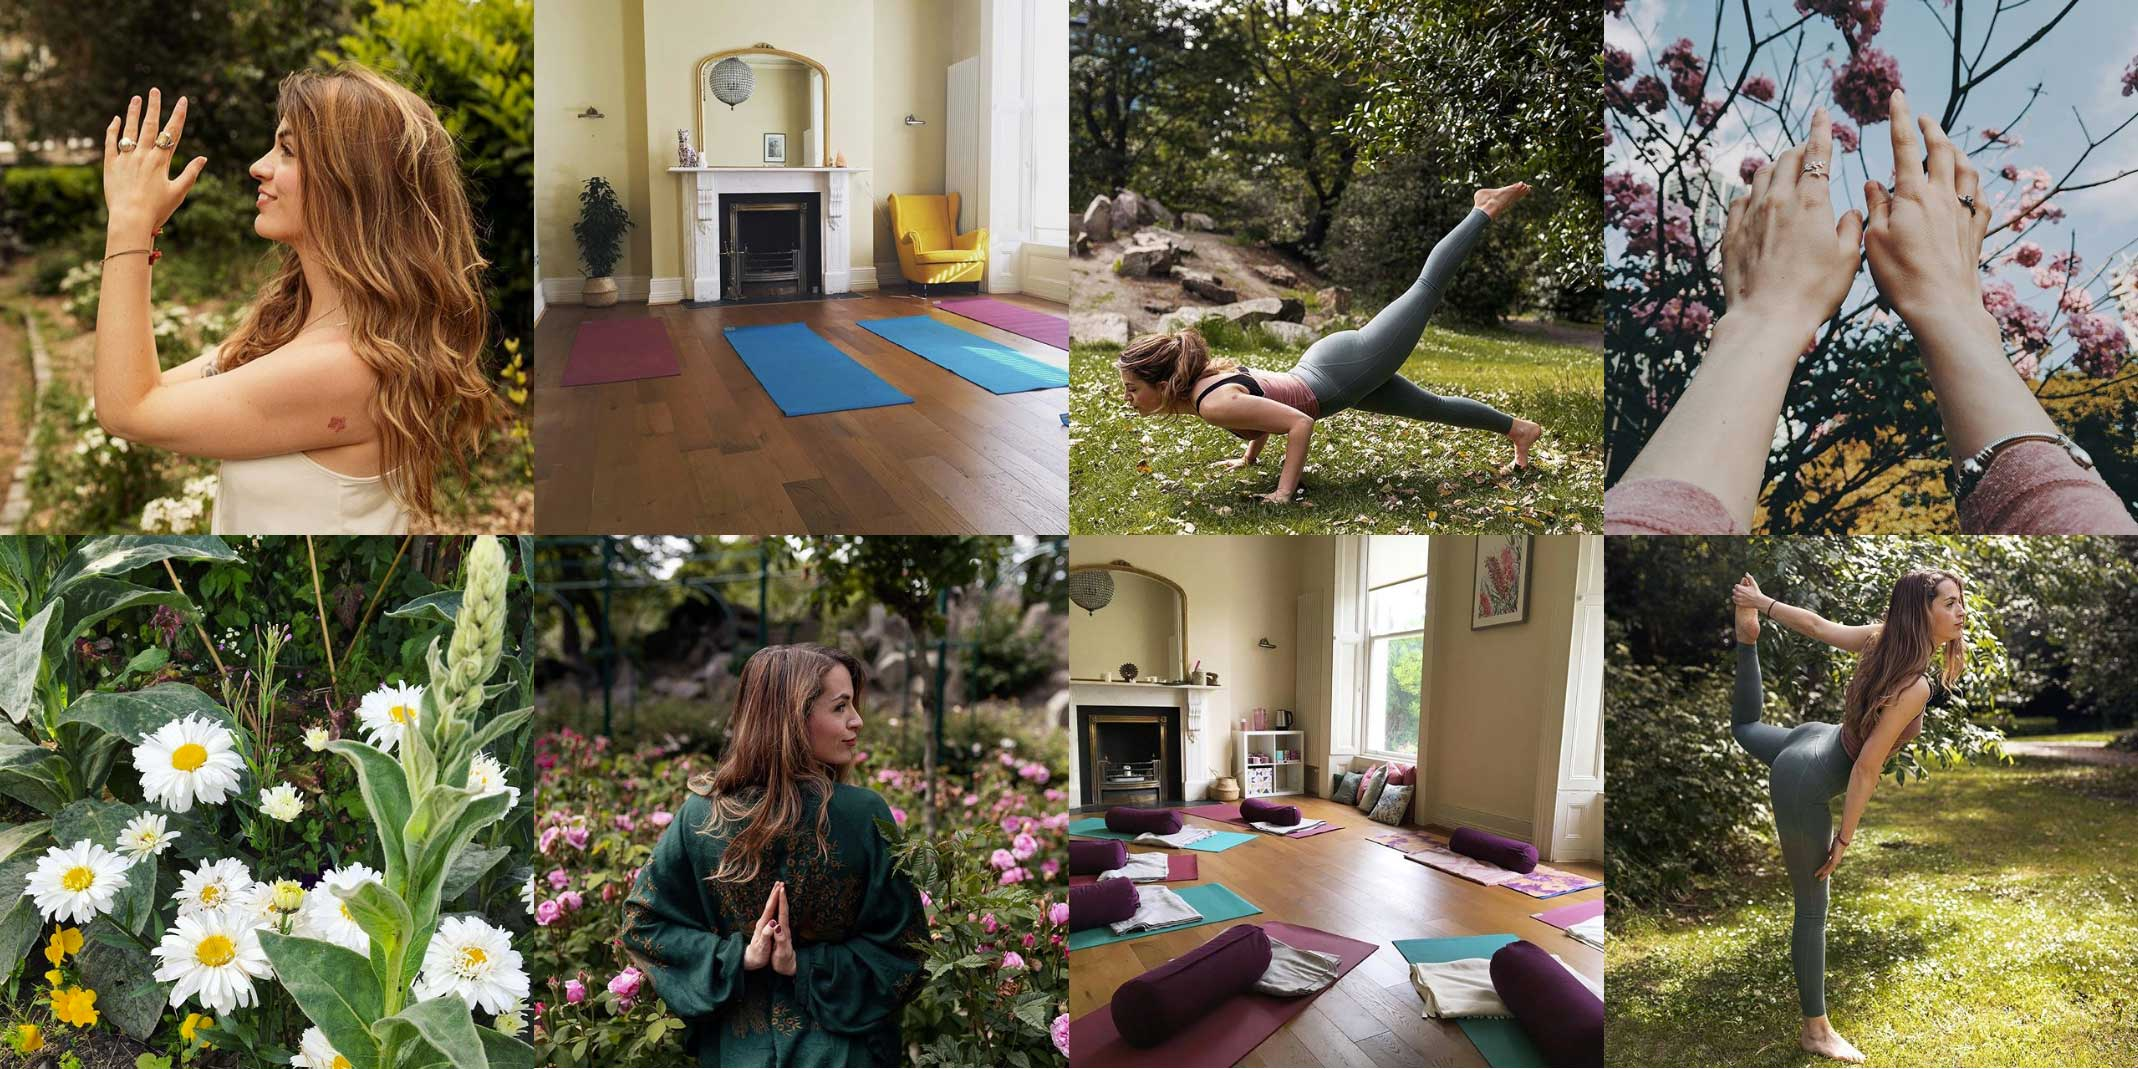 macha yoga instagram